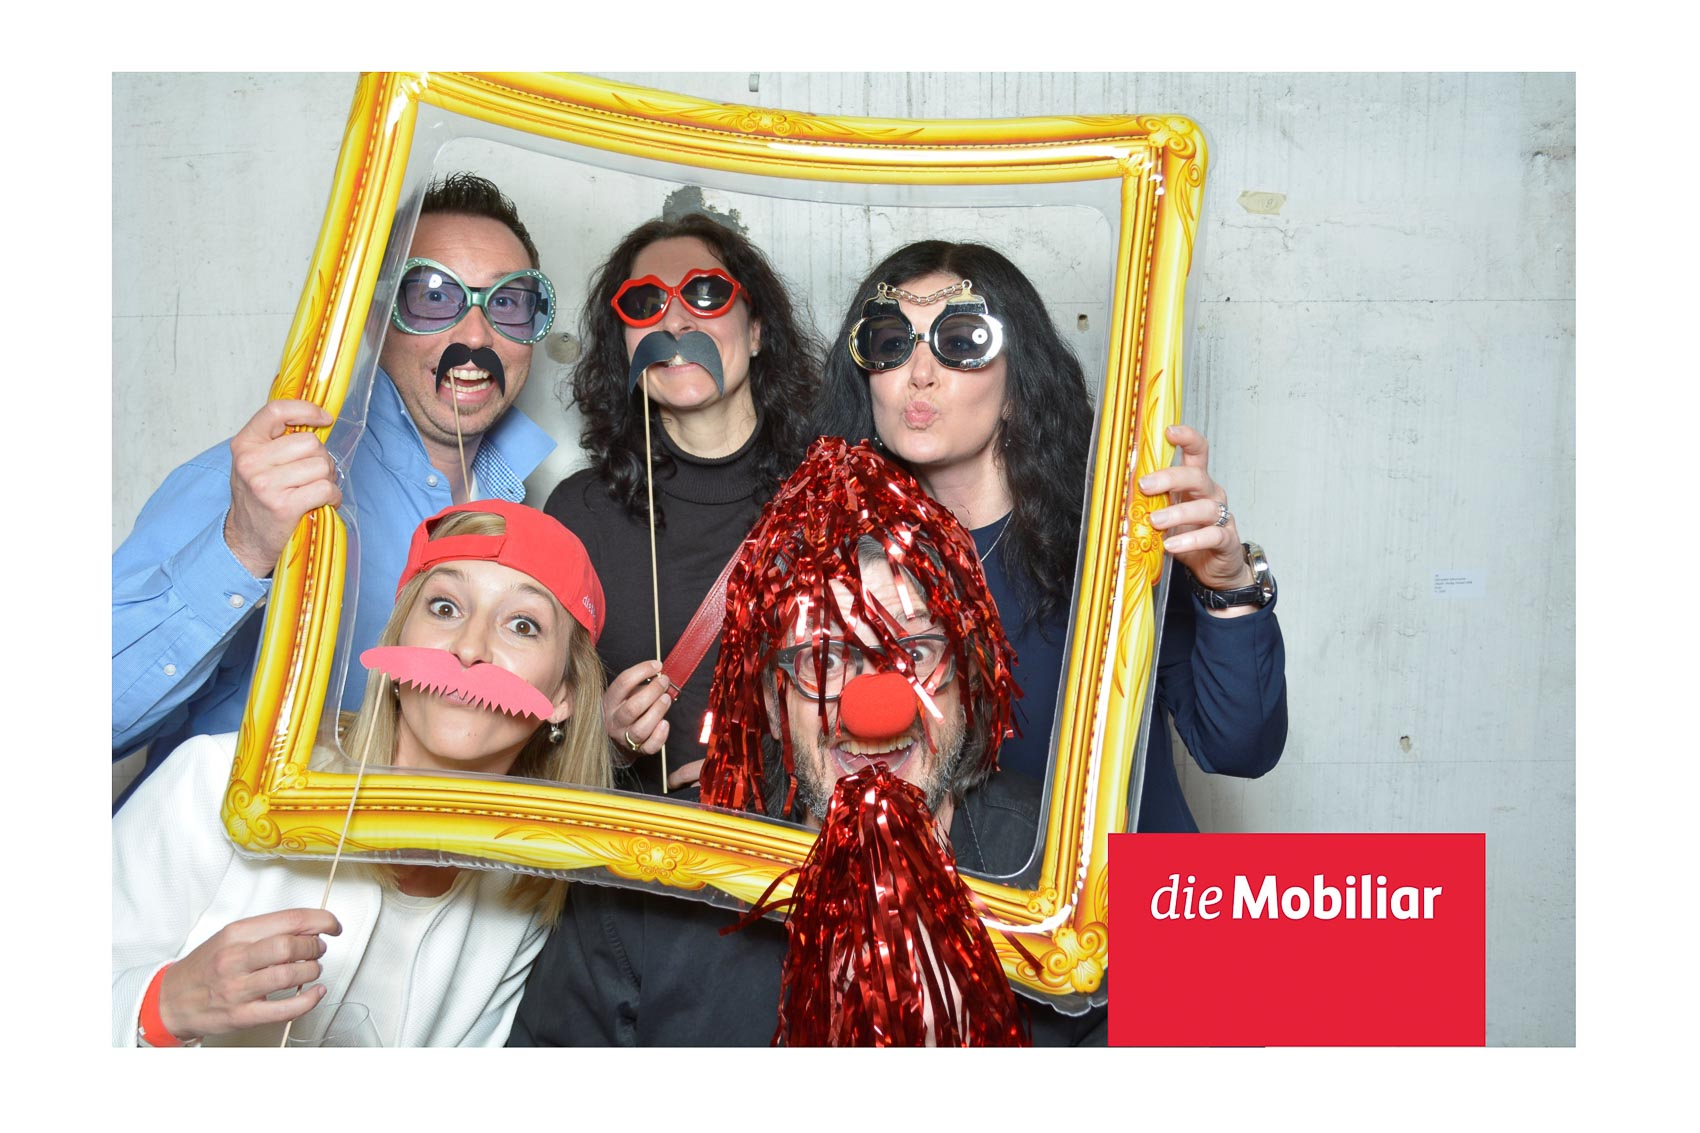 Photo-Booth-Baschung-Fotografie-Event-22.jpg